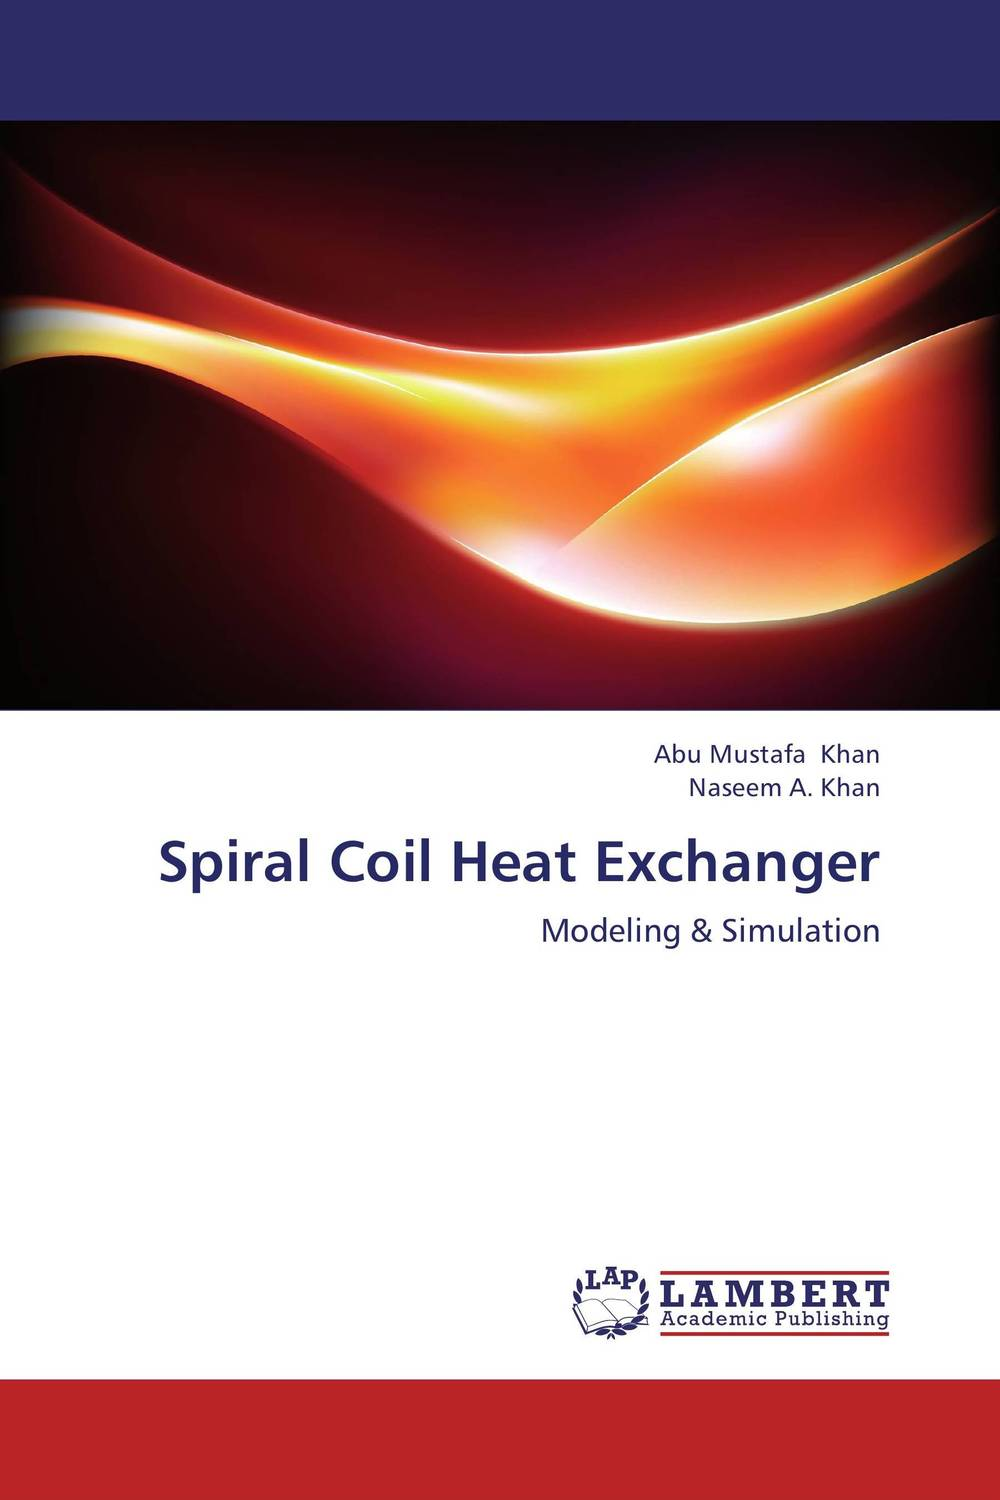 Spiral Coil Heat Exchanger